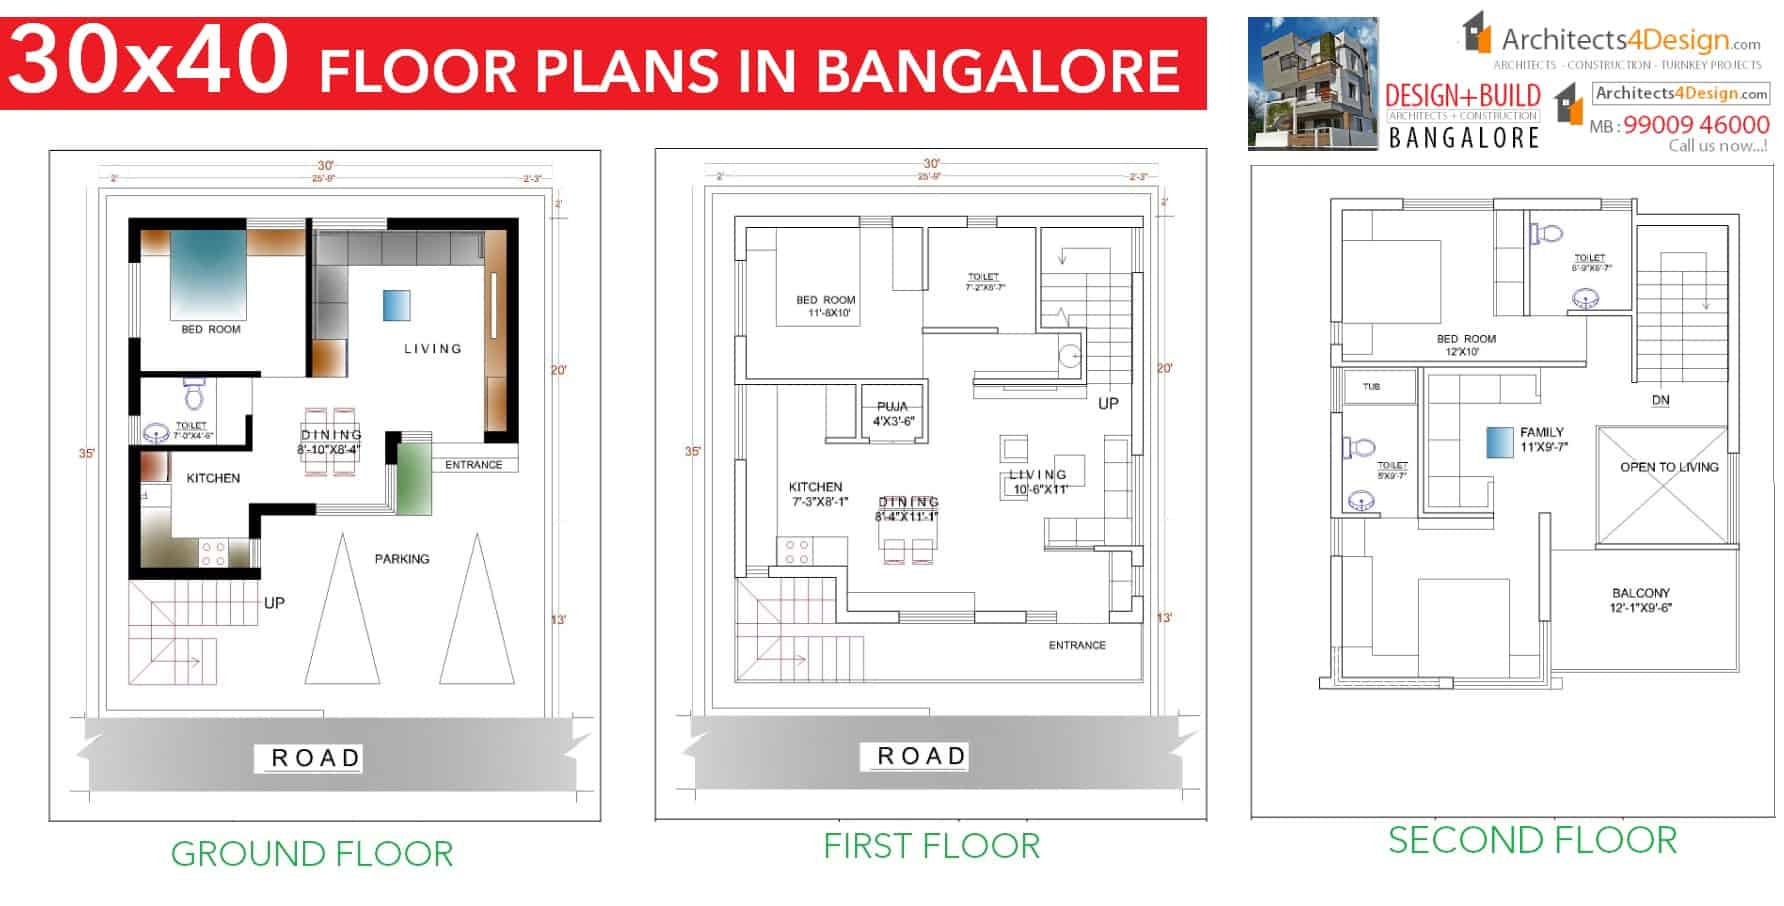 30x40 house plans in bangalore for g 1 g 2 g 3 g 4 floors for House plans for 30x40 site